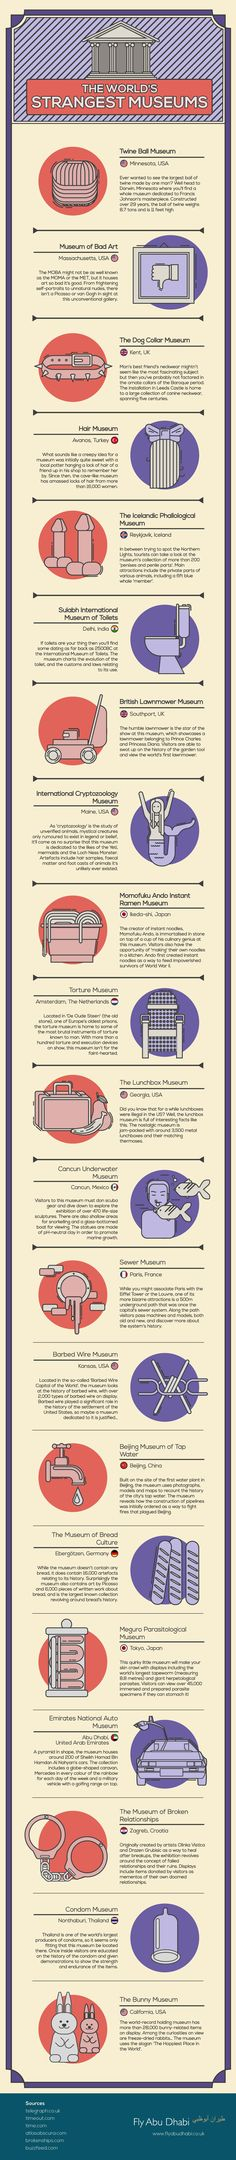 Infographic: the world's strangest museums - Matador Network